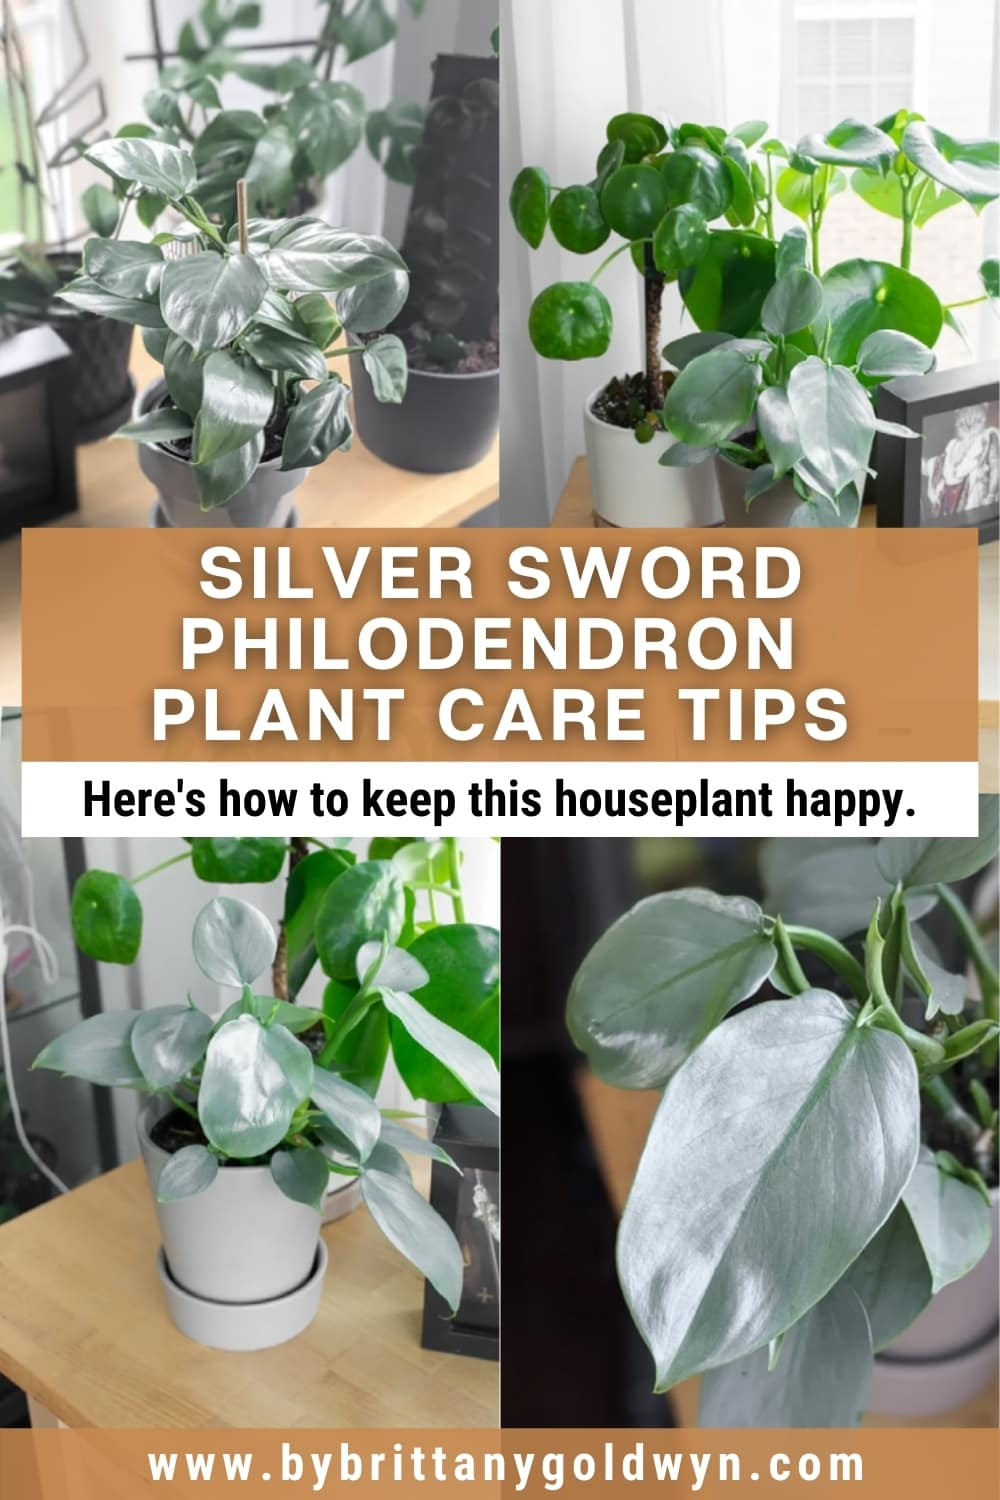 image collage of silver sword philodendron with text overlay